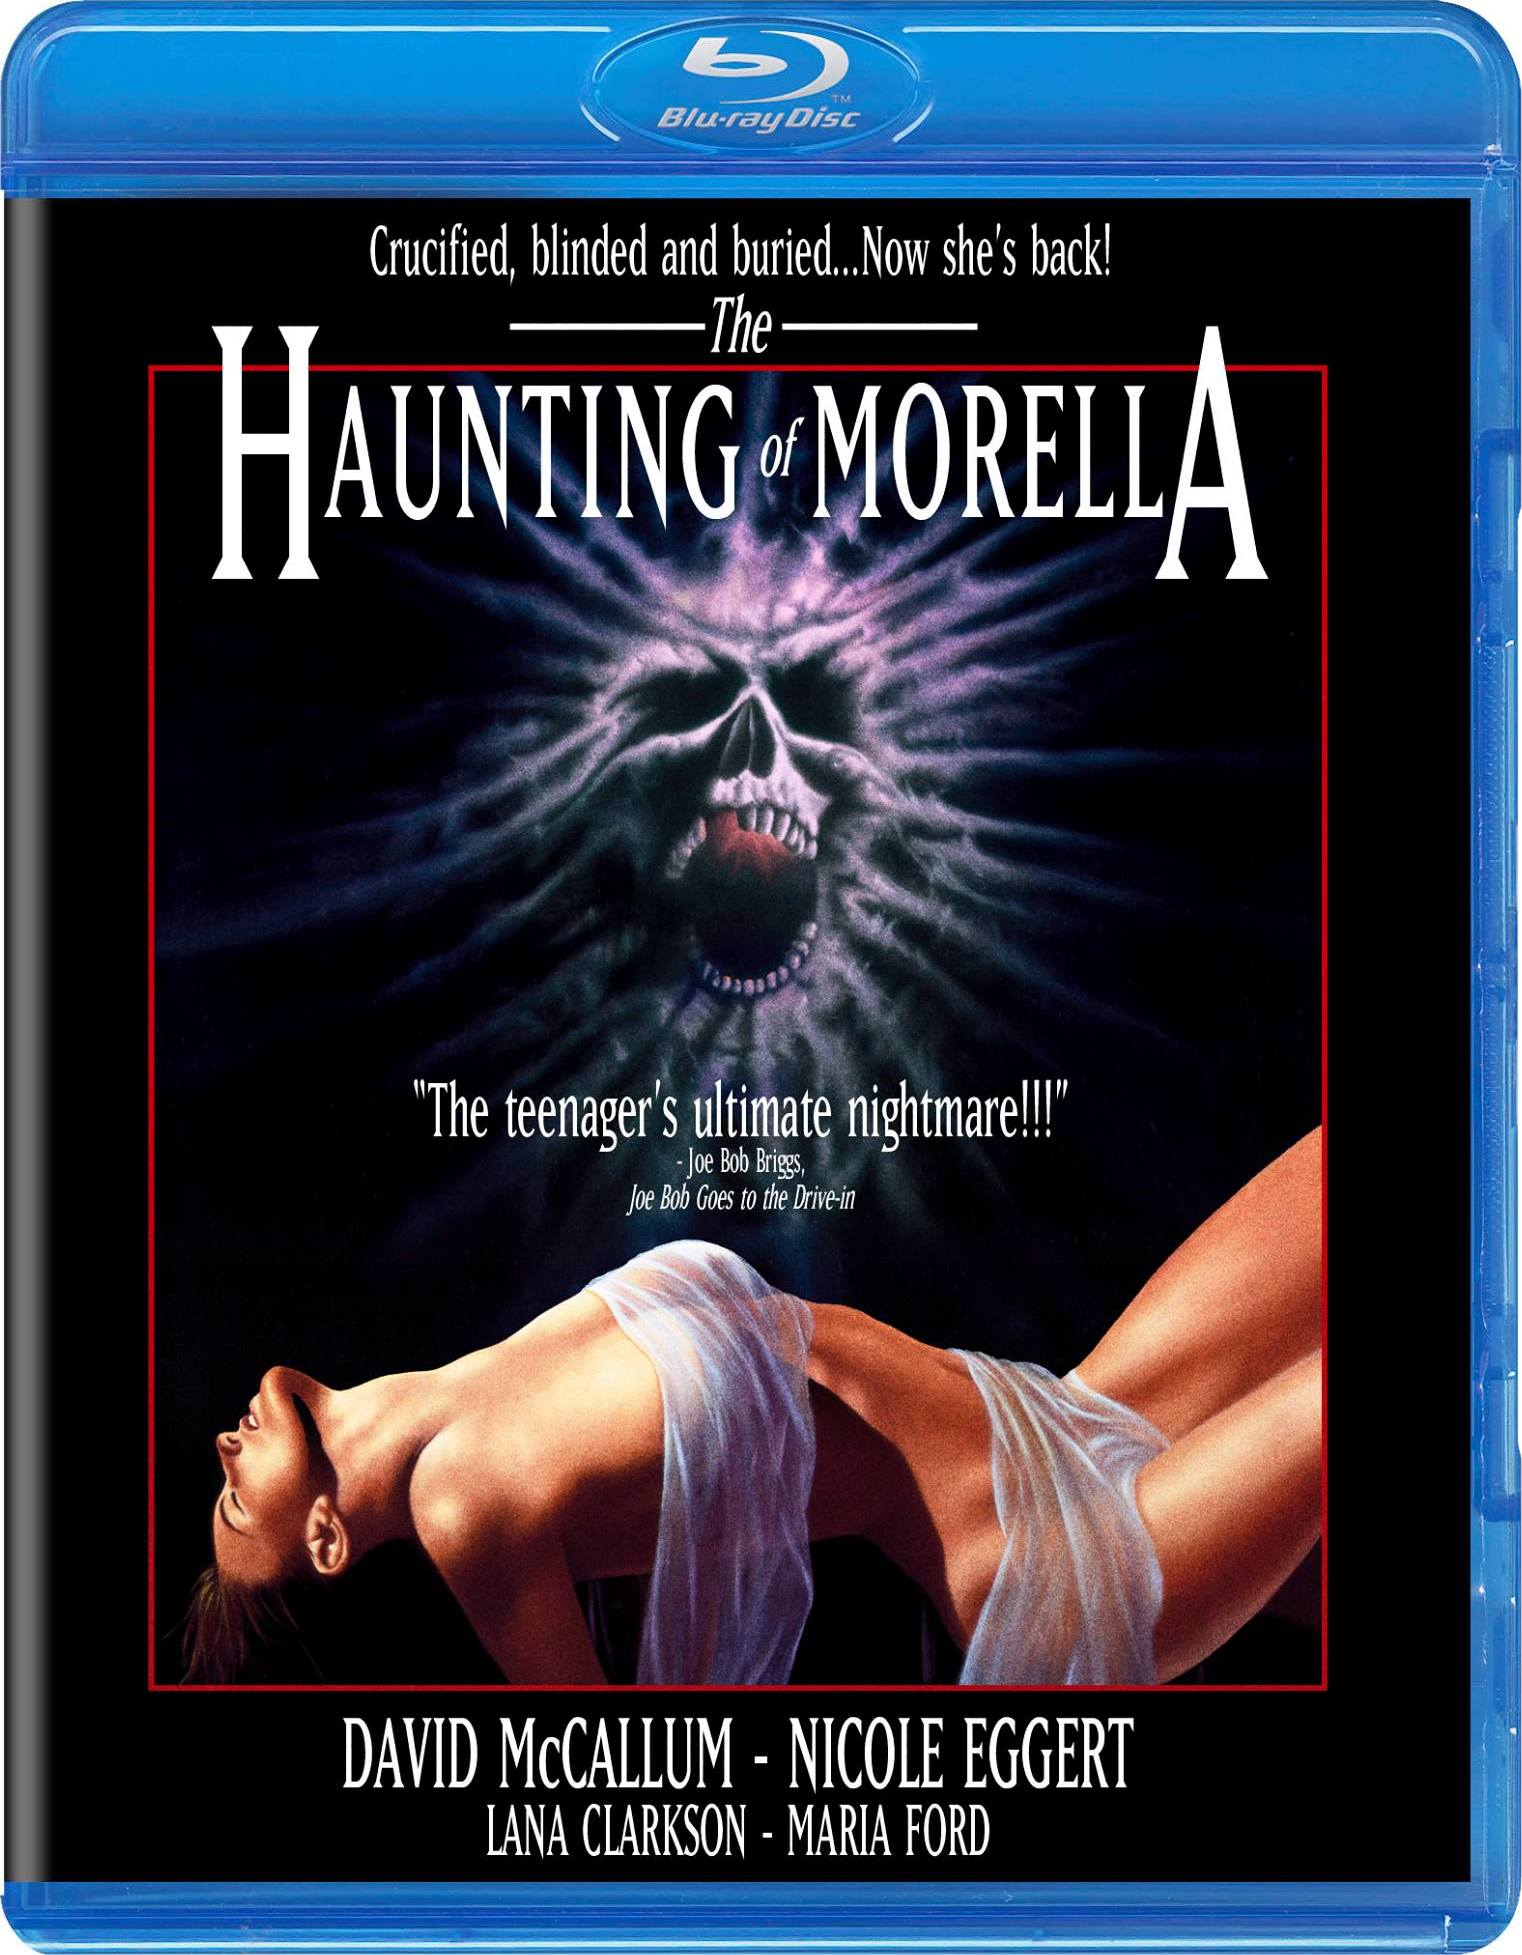 The Haunting of Morella (1990) - Blu-ray Review